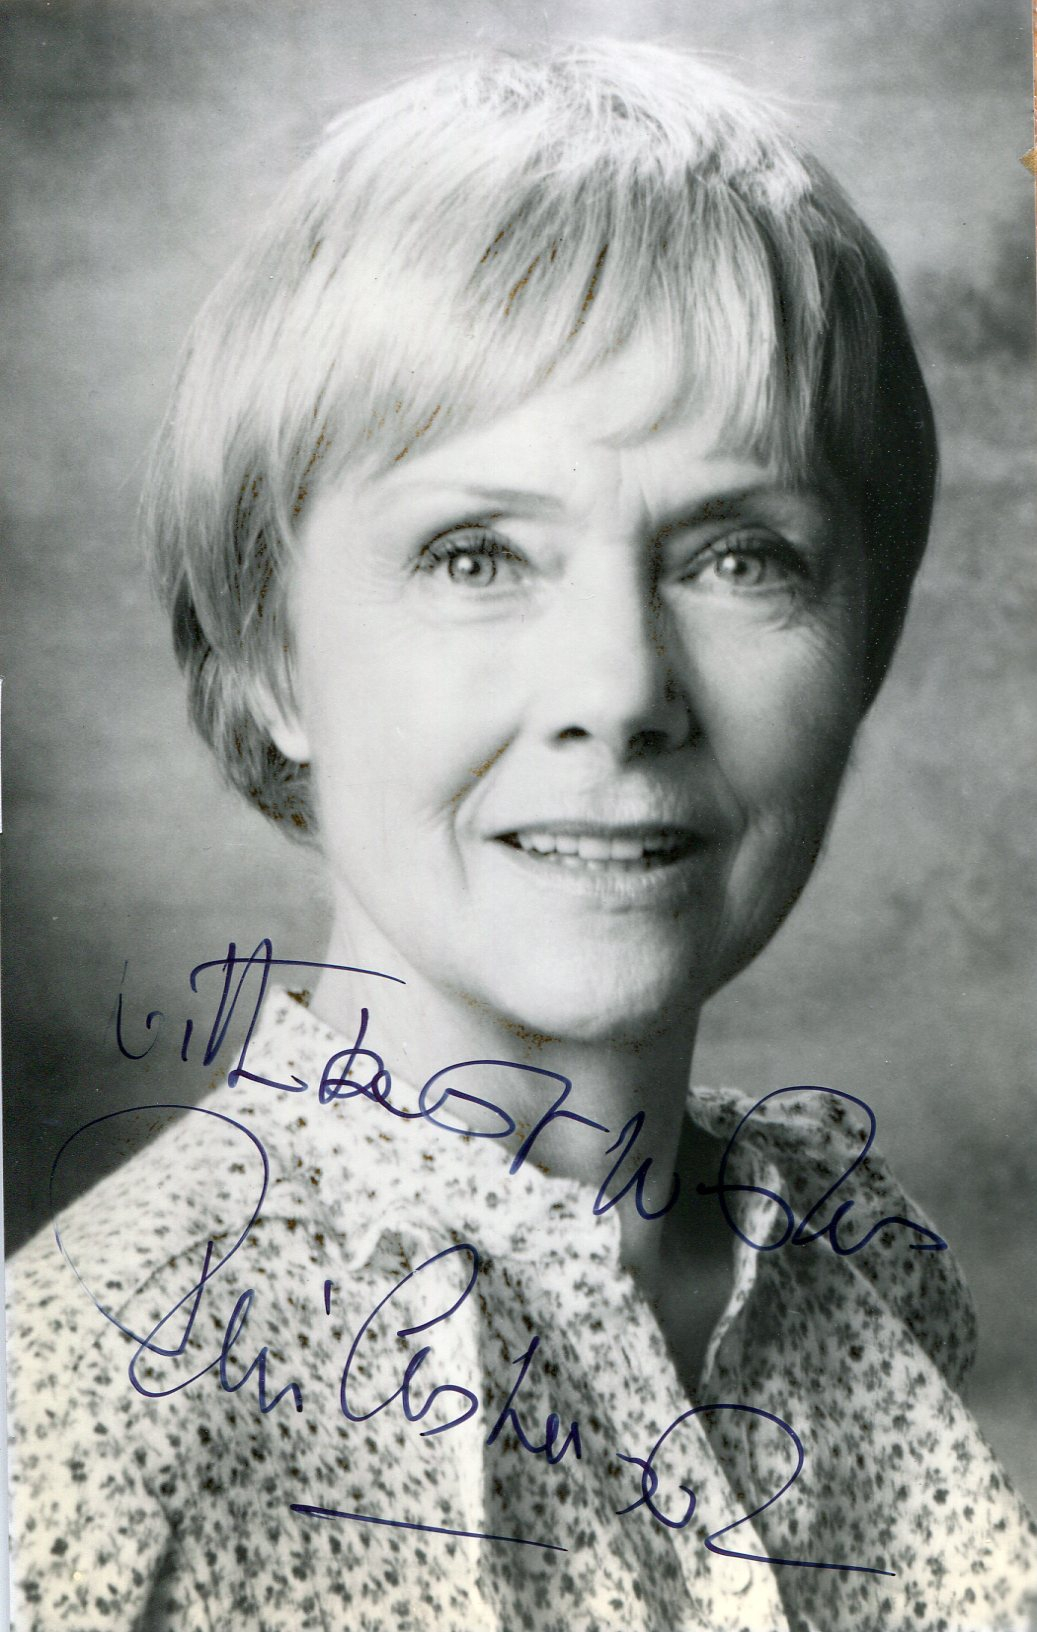 Signed Photographs of Actors from the 1970's - Movies.